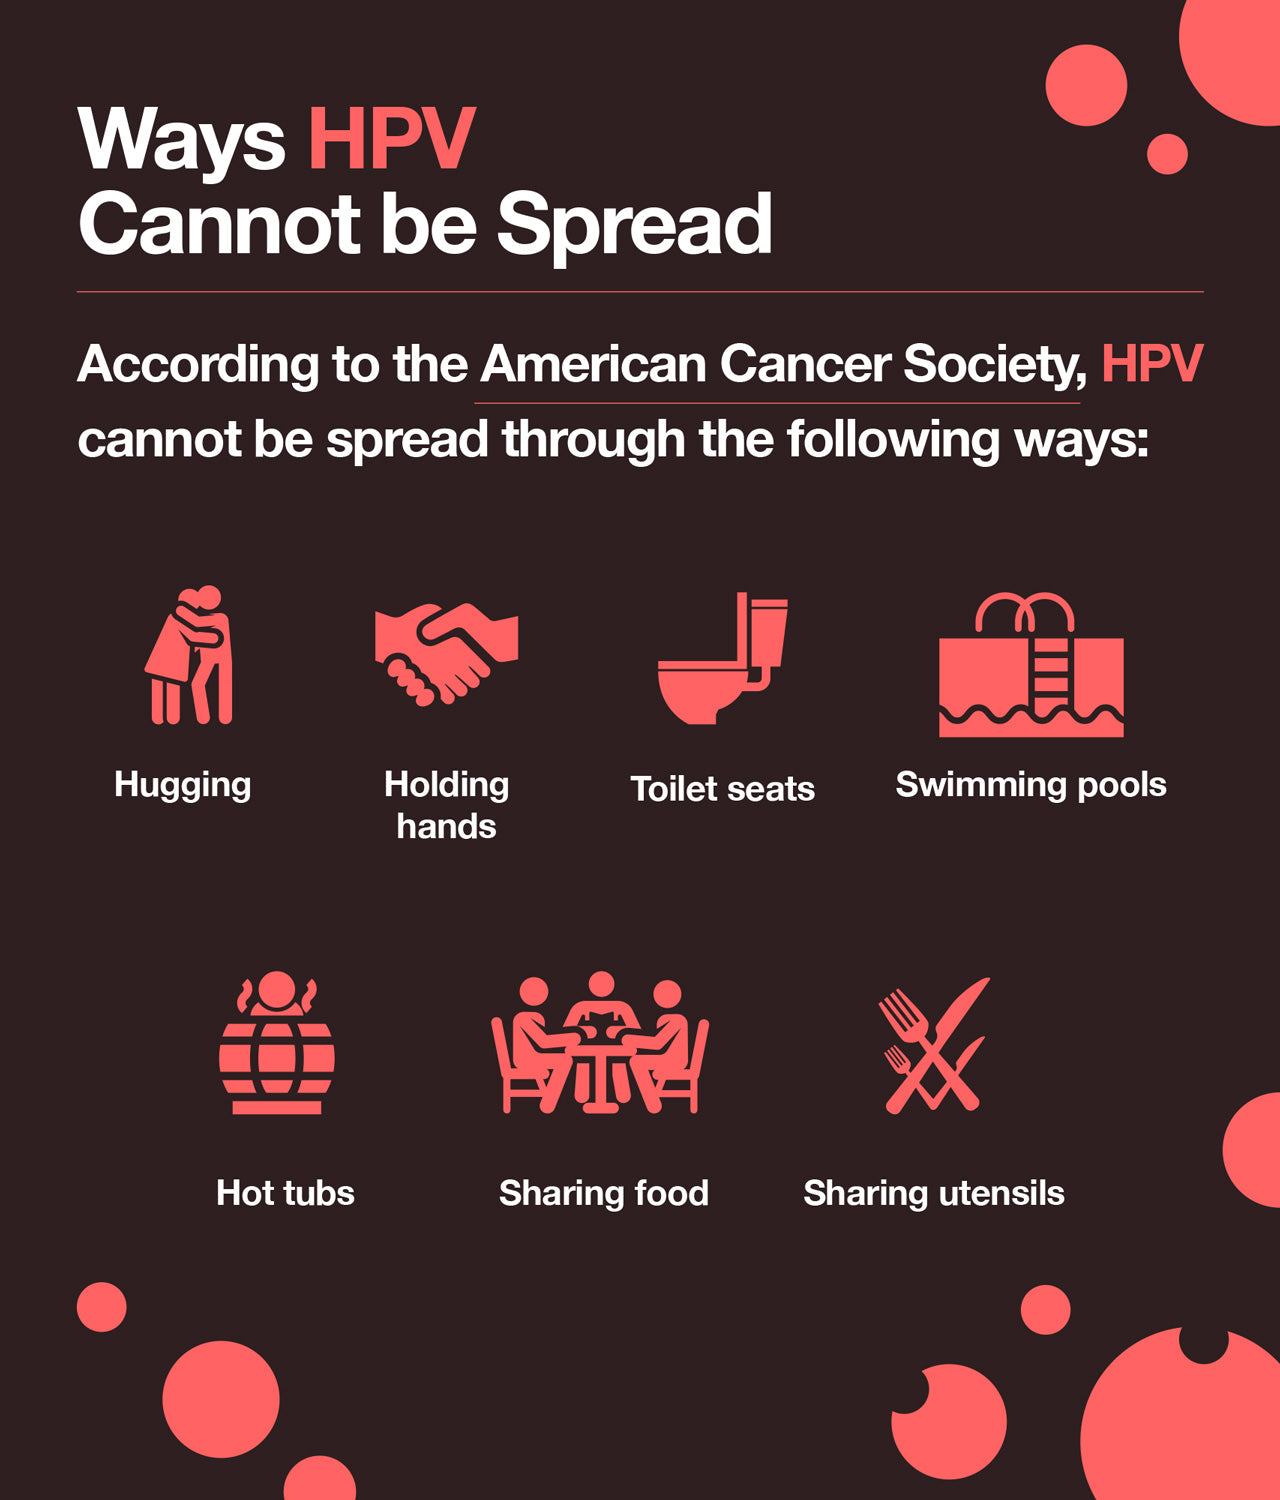 Ways HPV cannot be spread